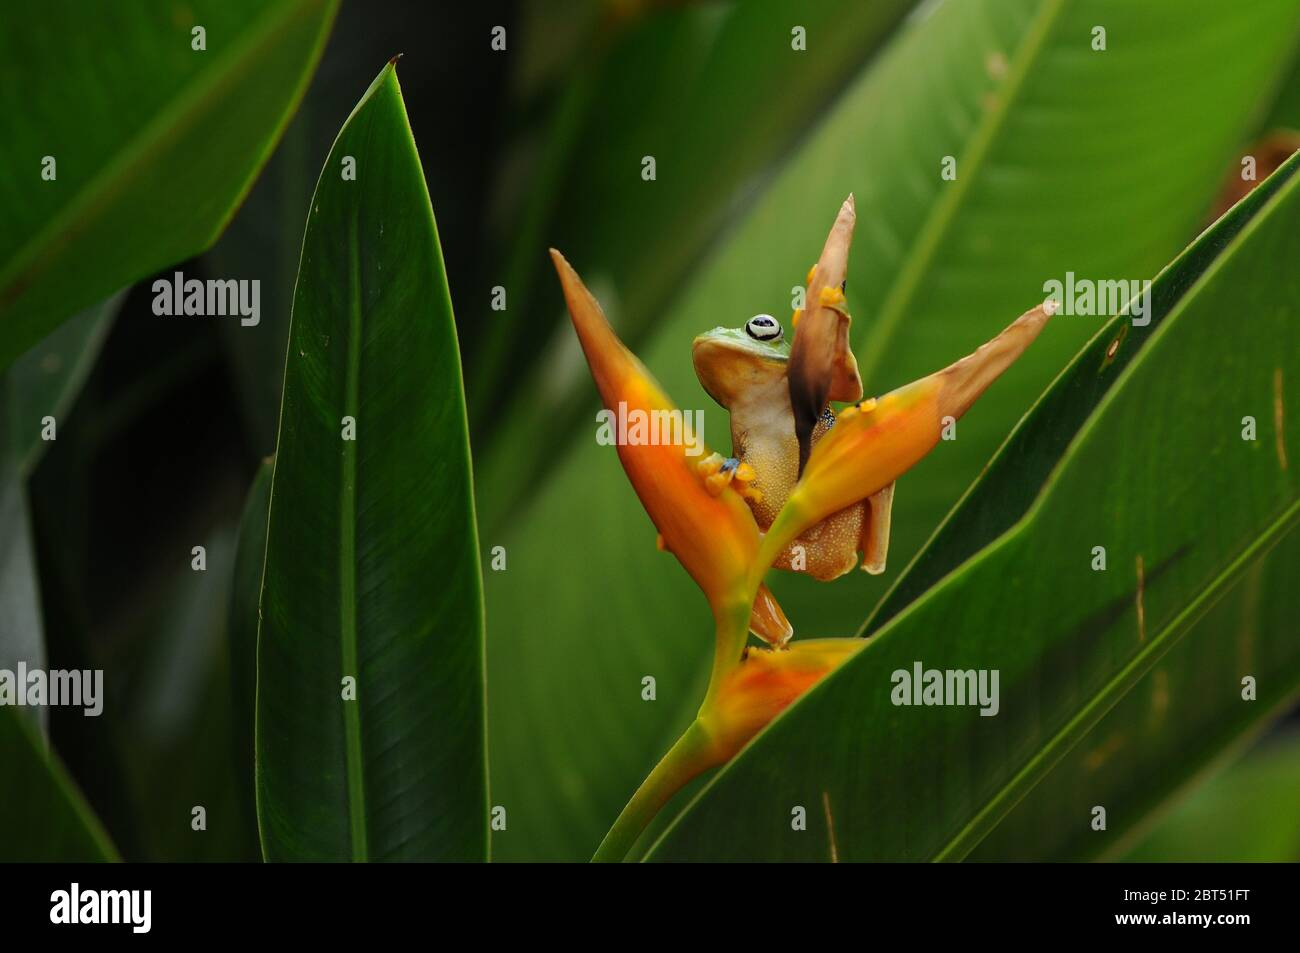 Low angle view of a dumpy tree frog on a flower, Indonesia Stock Photo